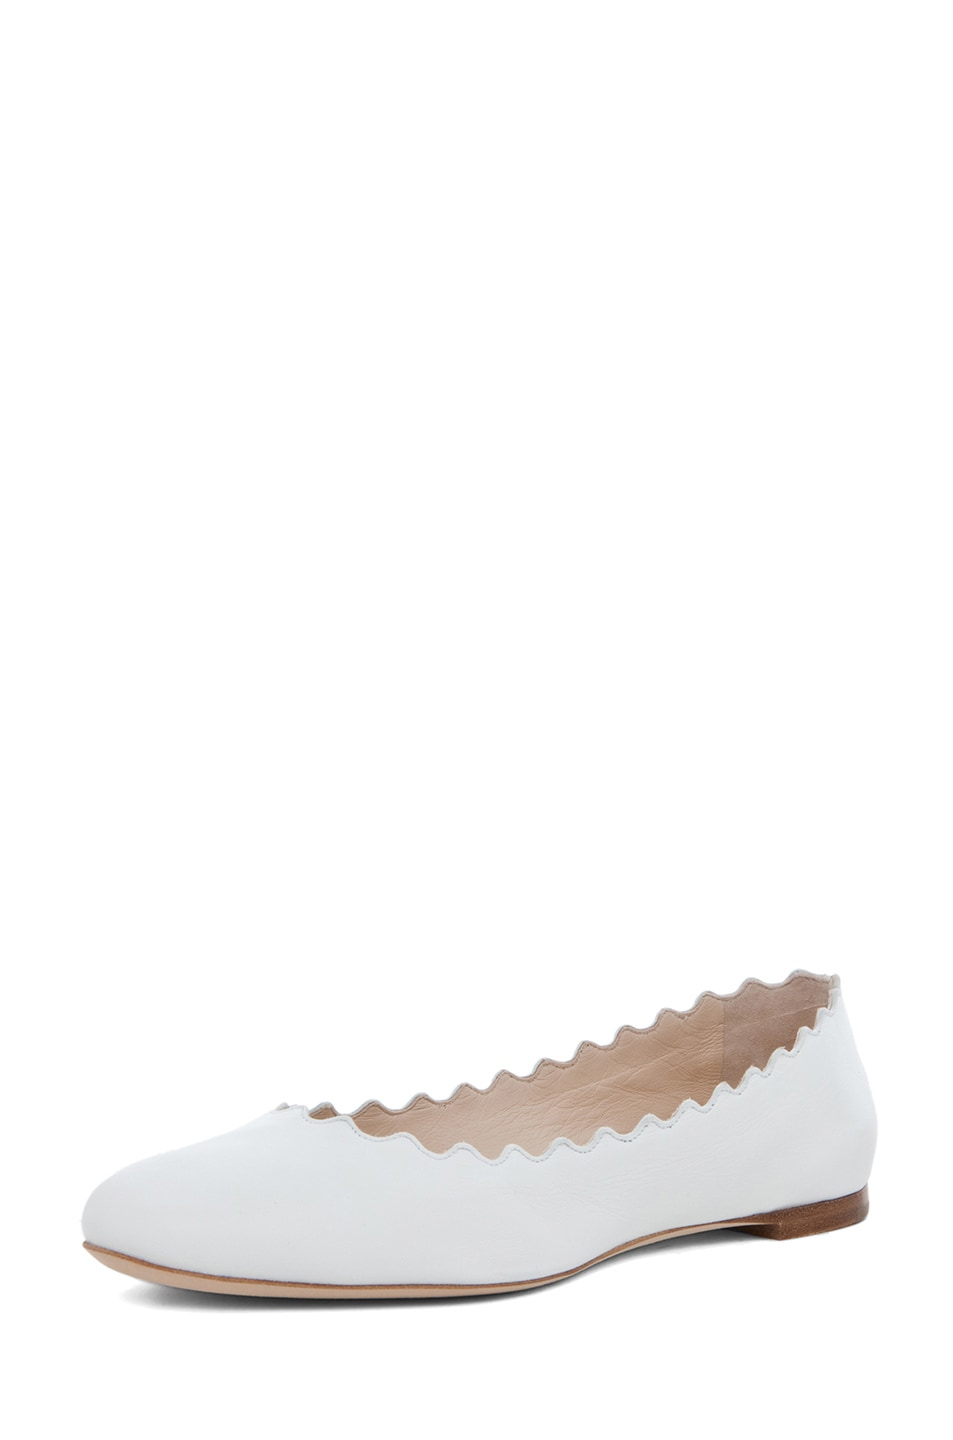 Image 2 of Chloe Leather Scallop Ballerina Flat in White